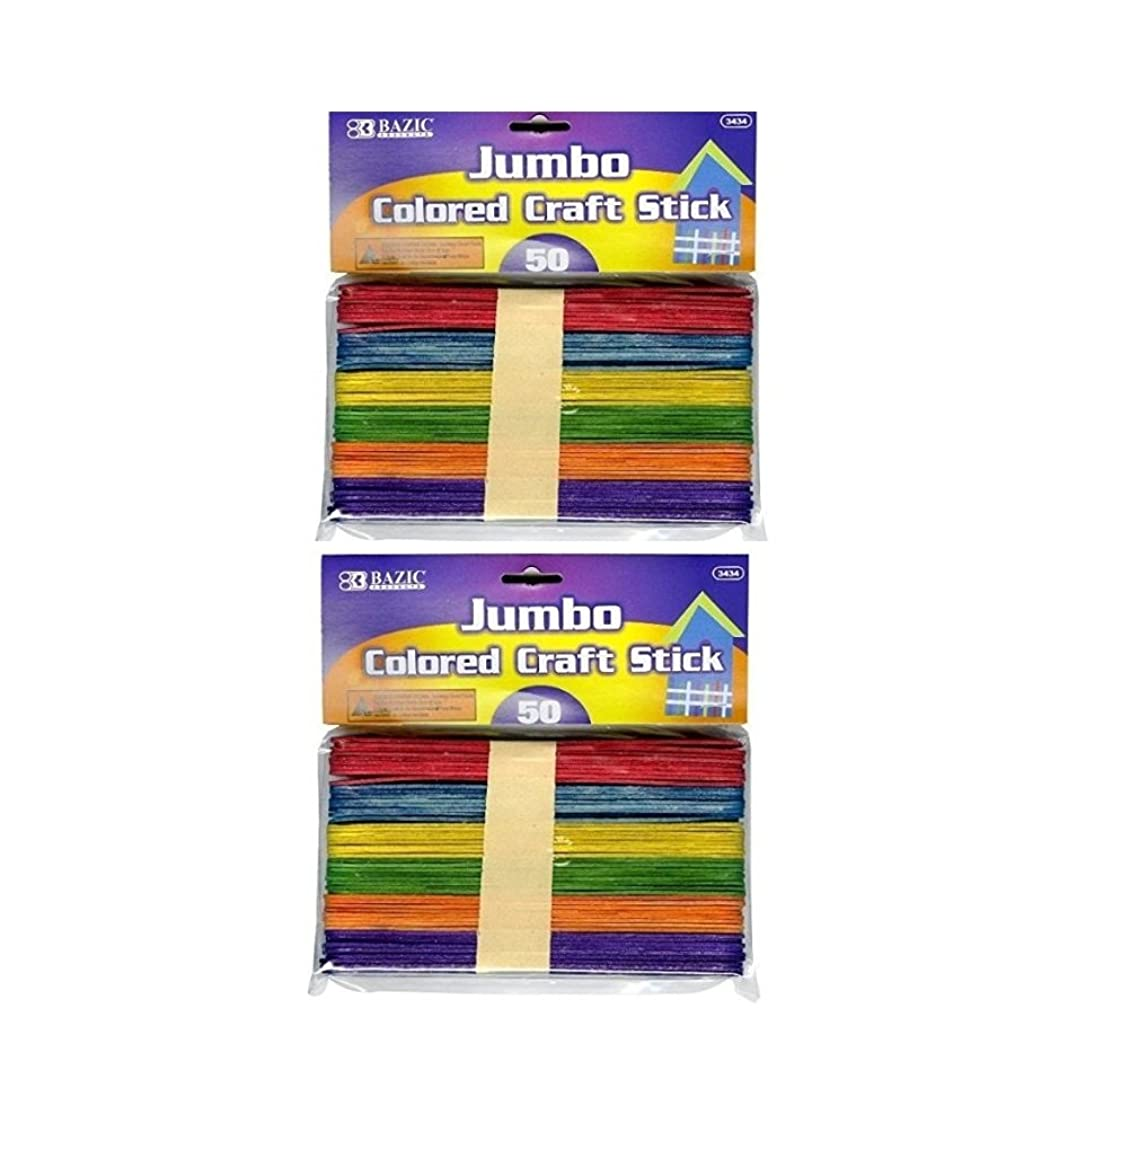 BAZIC 3434-2PK Jumbo Colored Craft Stick, Assorted, 2, 50 Per Pack, Totals 100, Natural